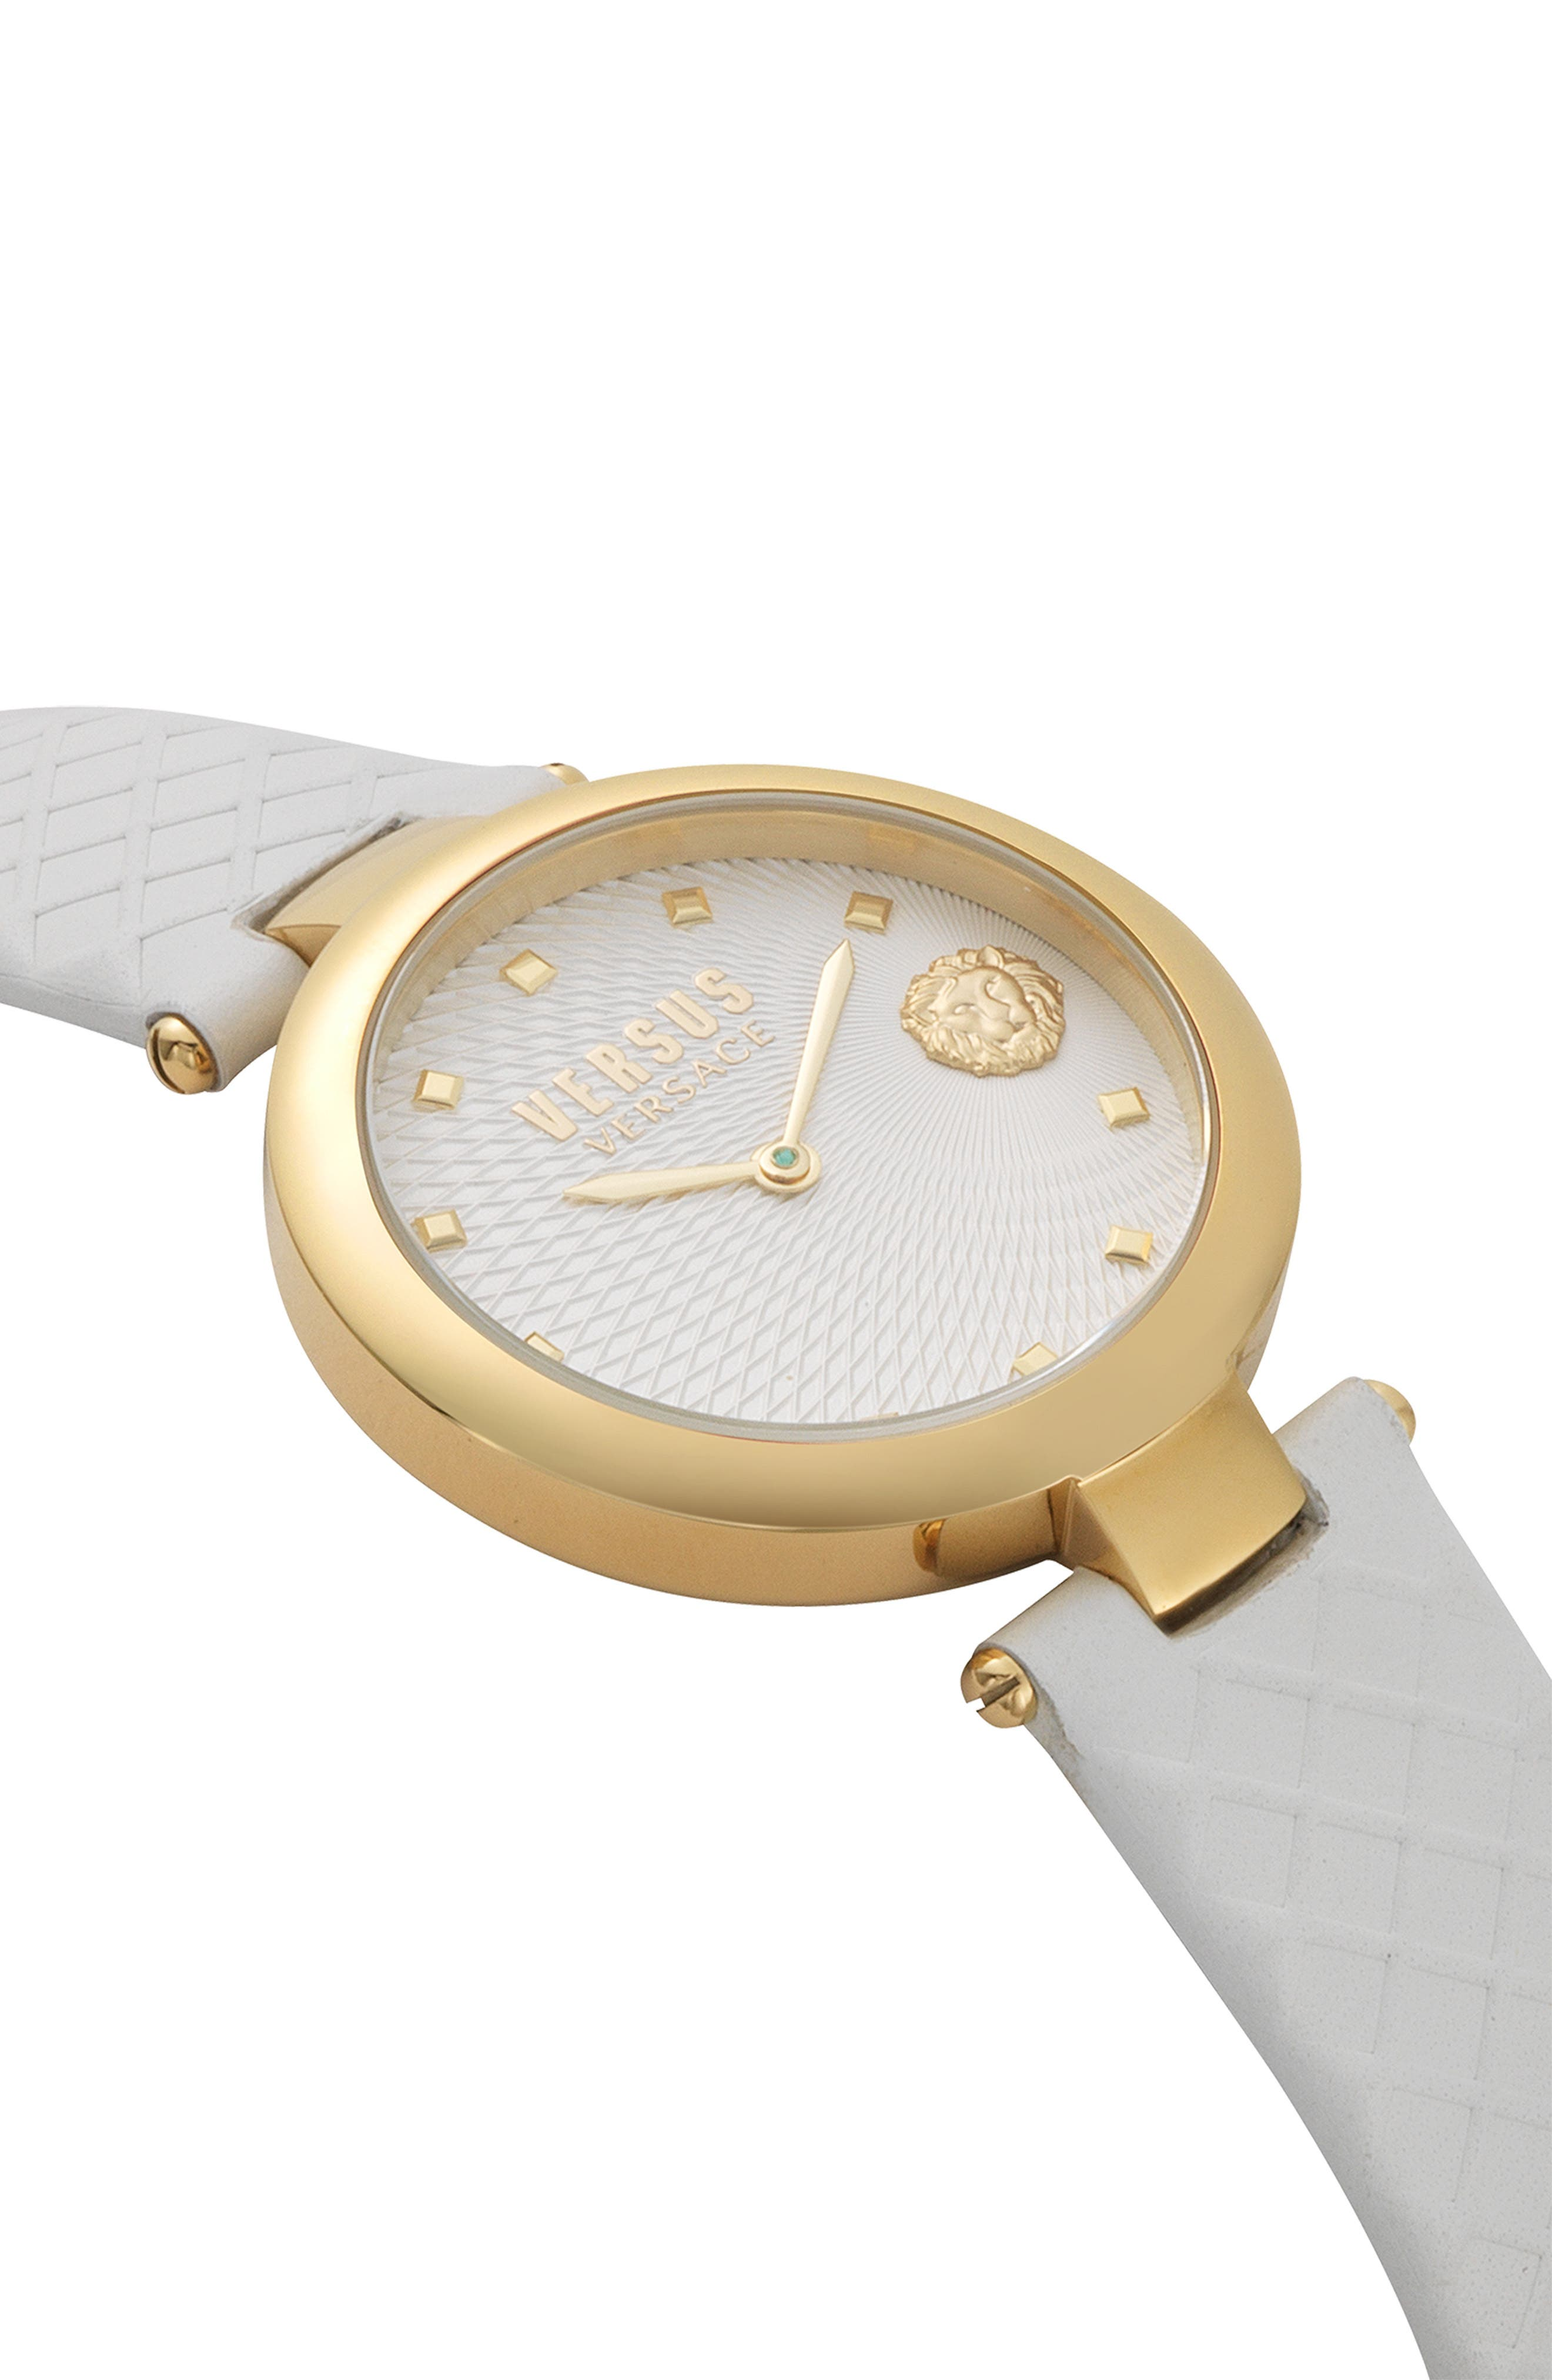 VERSUS VERSACE, Buffle Bay Leather Strap Watch, 36mm, Alternate thumbnail 3, color, WHITE/ GOLD